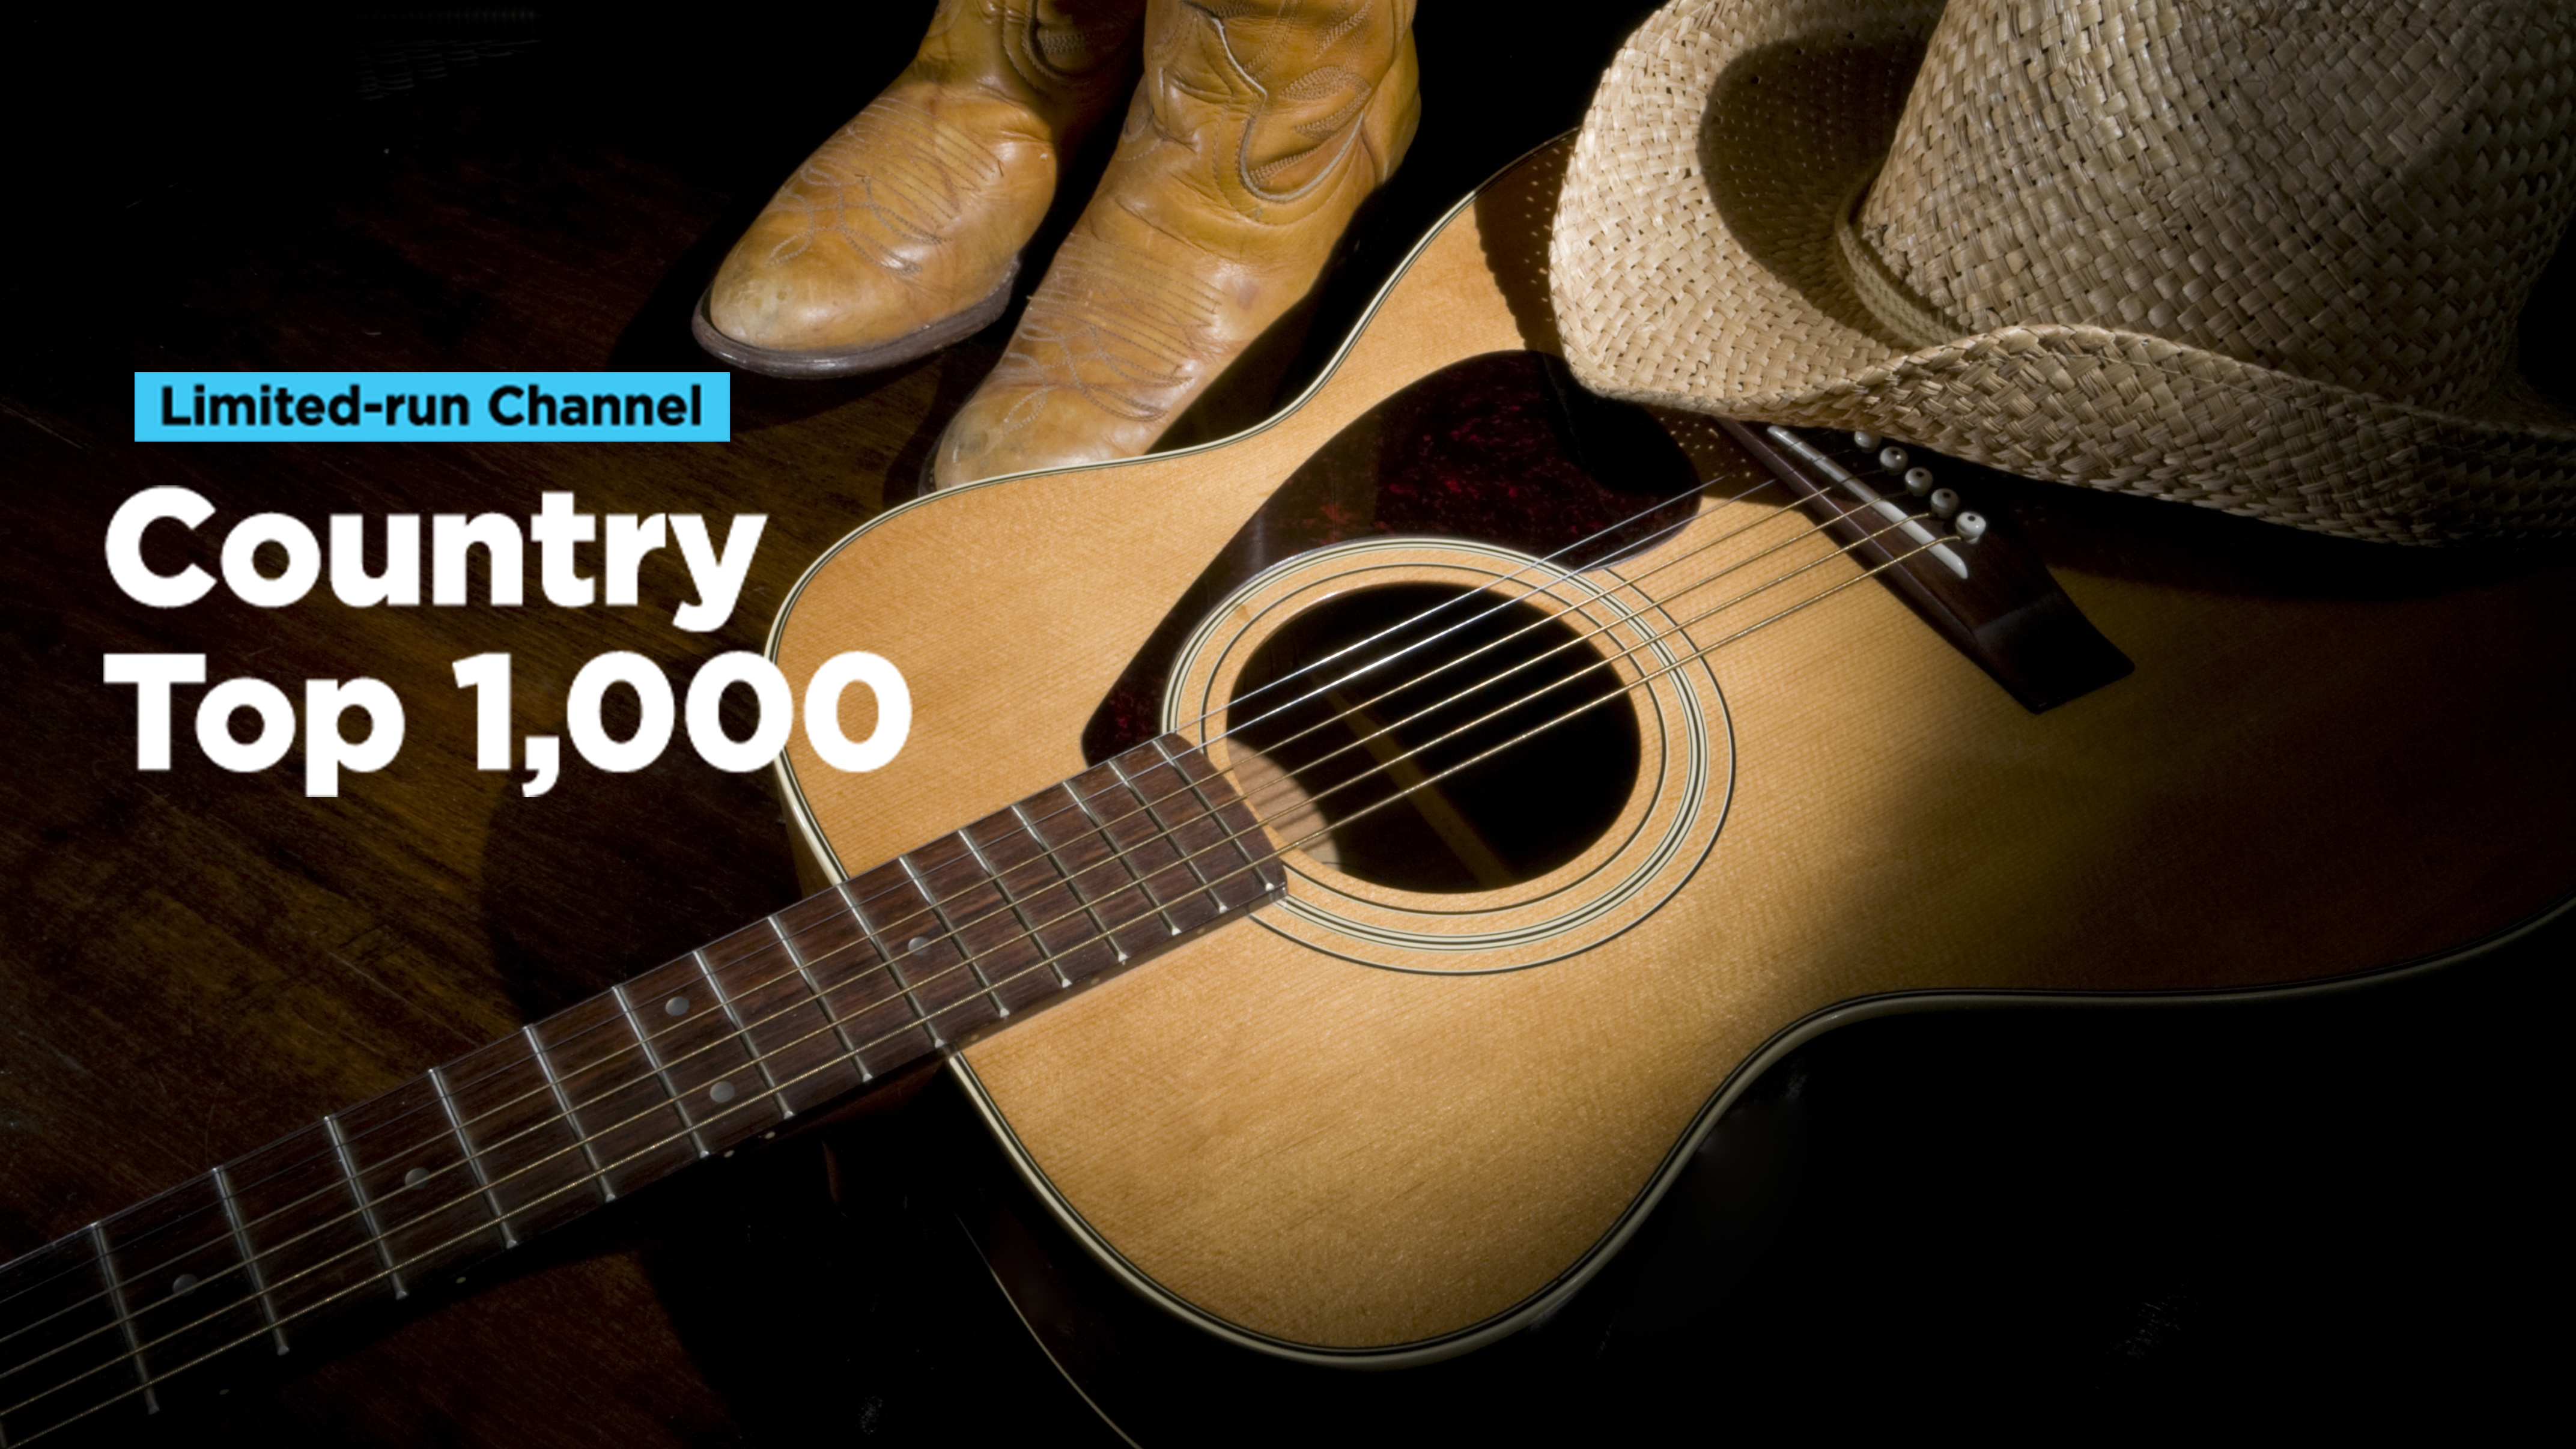 Hear the top 1,000 country songs of all time on limited-run